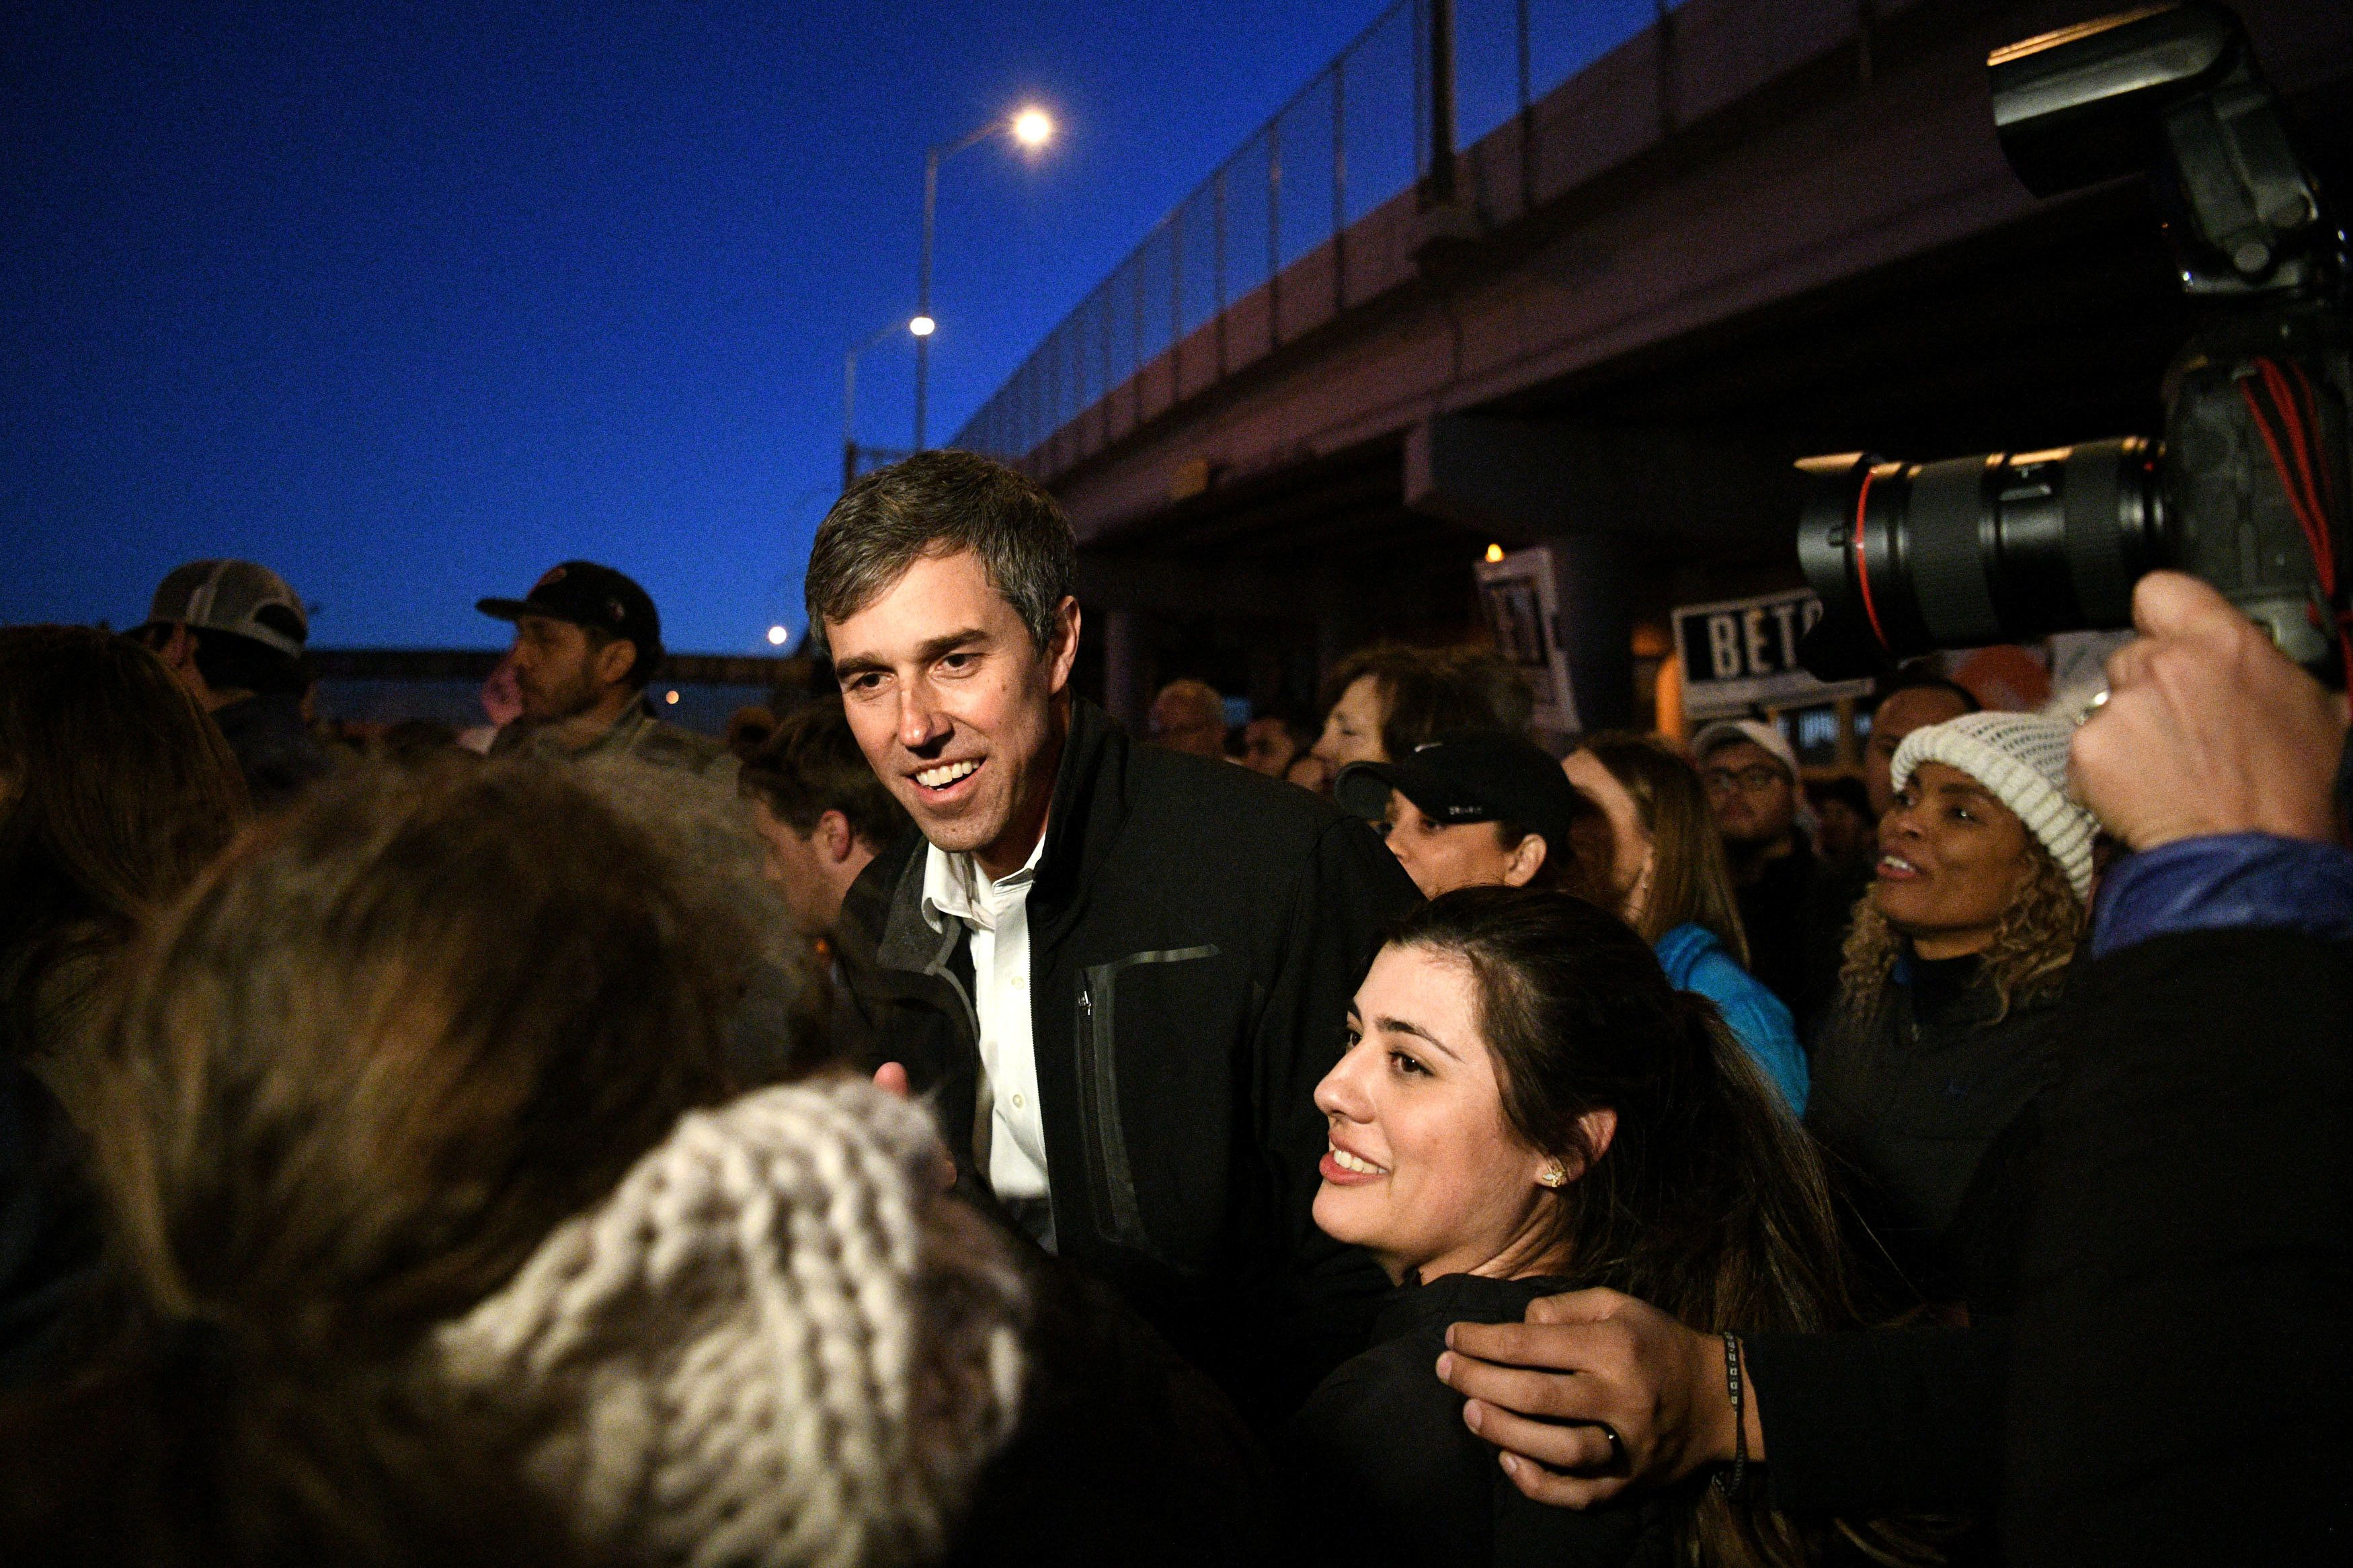 Beto O'Rourke Positions Himself As Direct Challenger To Trump: 'Walls End Lives'